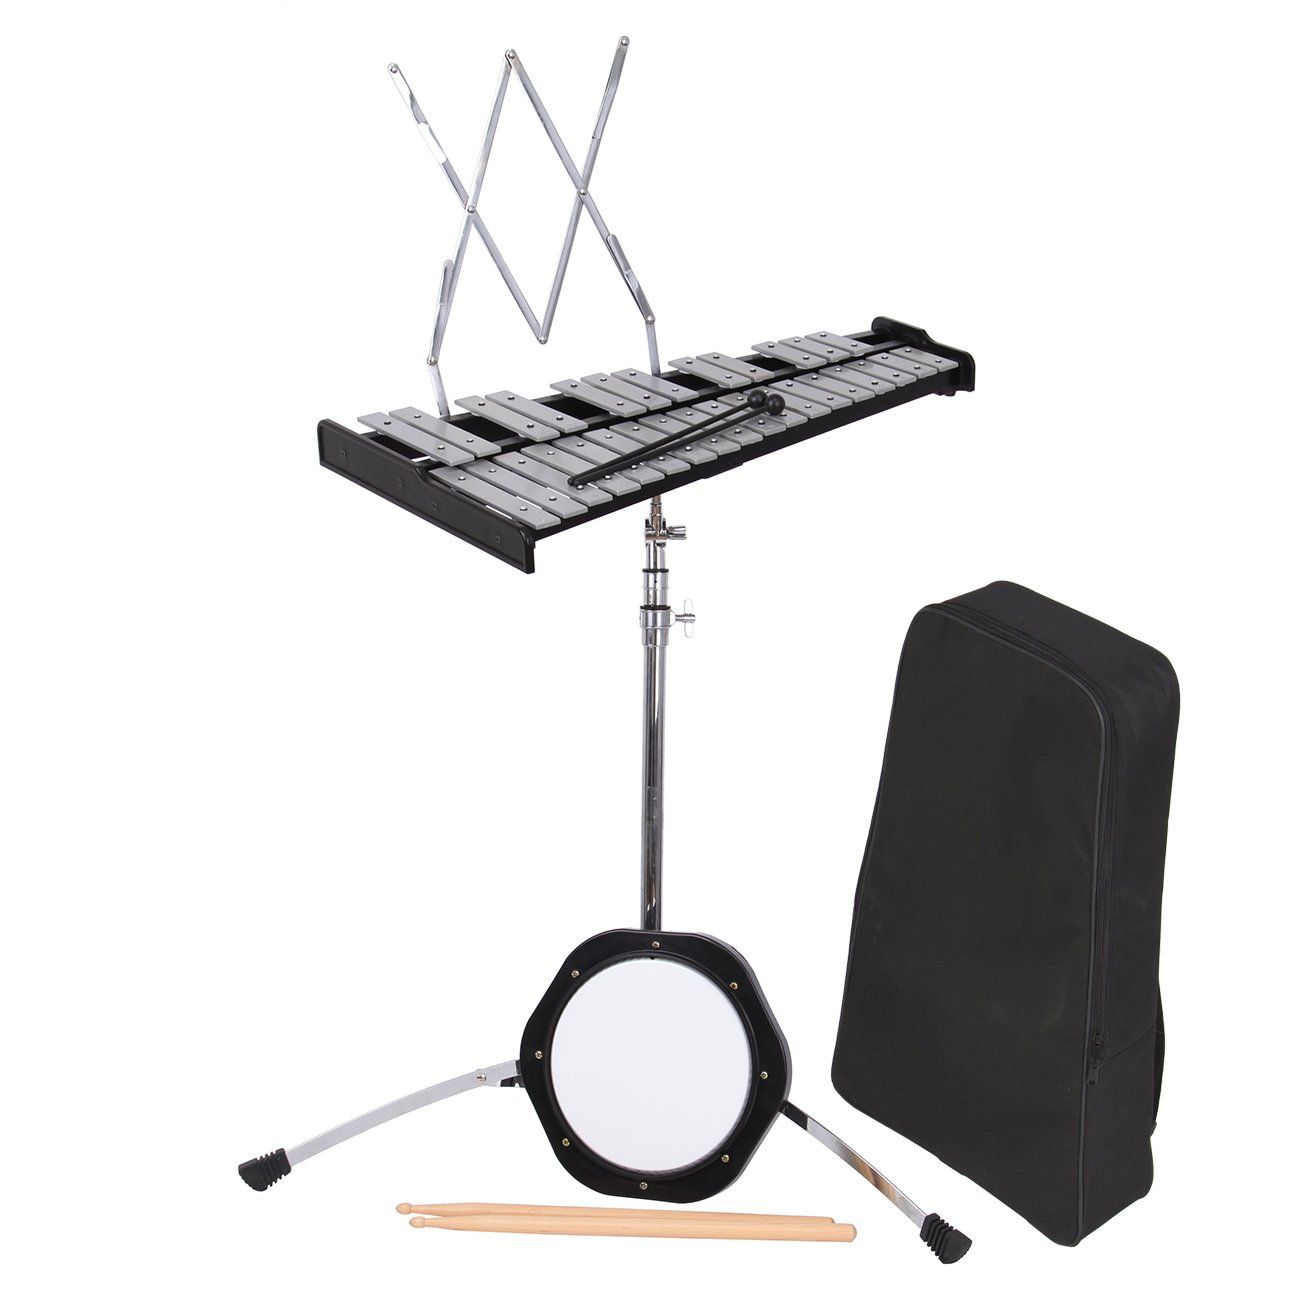 PanelTech Percussion Bell Kit Glockenspiel Bell Set 30 Note Mendini Case Educational Practice Pad Mallets,Sticks, Stand,Carry Case